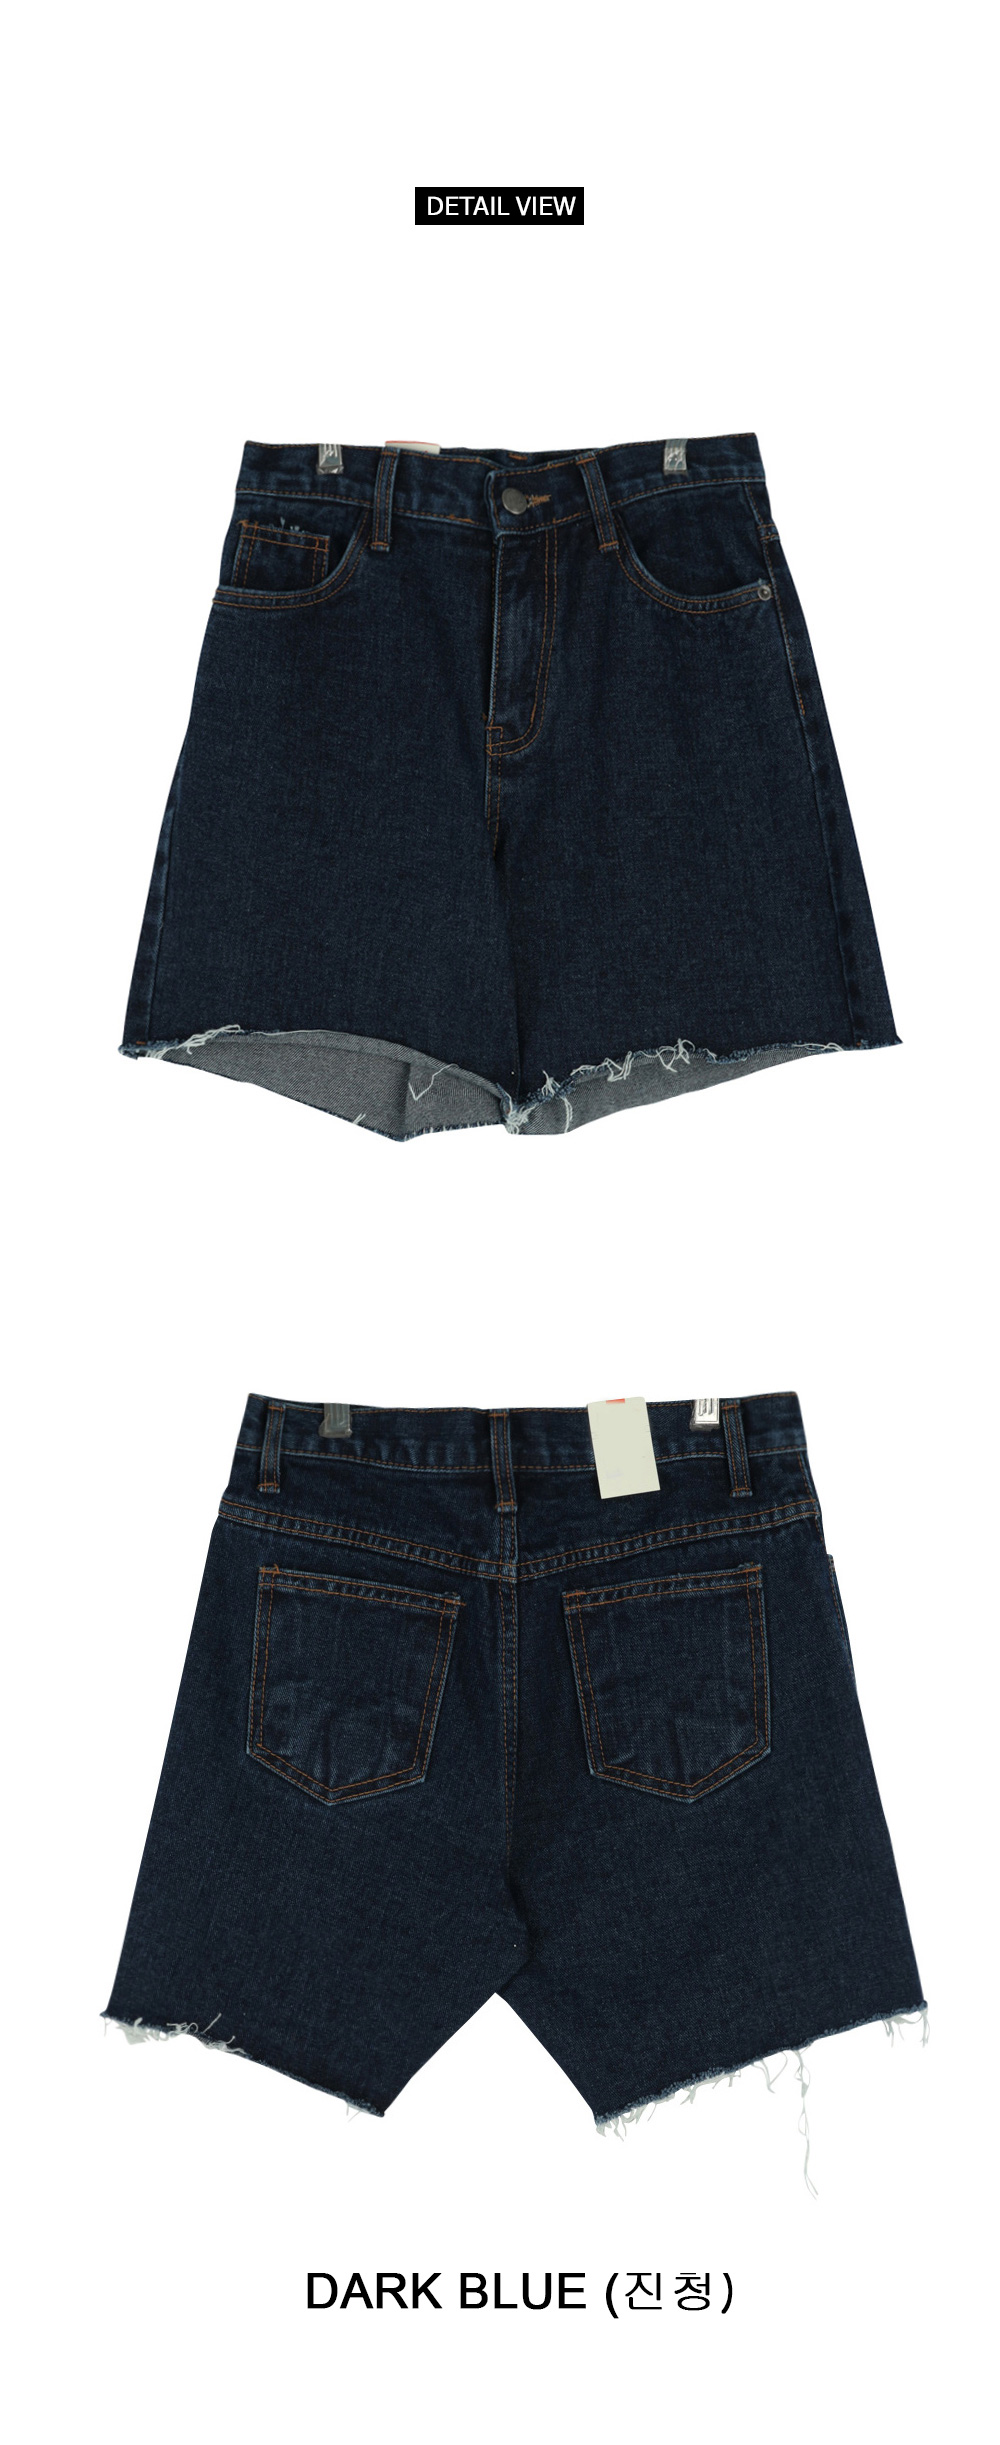 Pomi-Banhai denim shorts